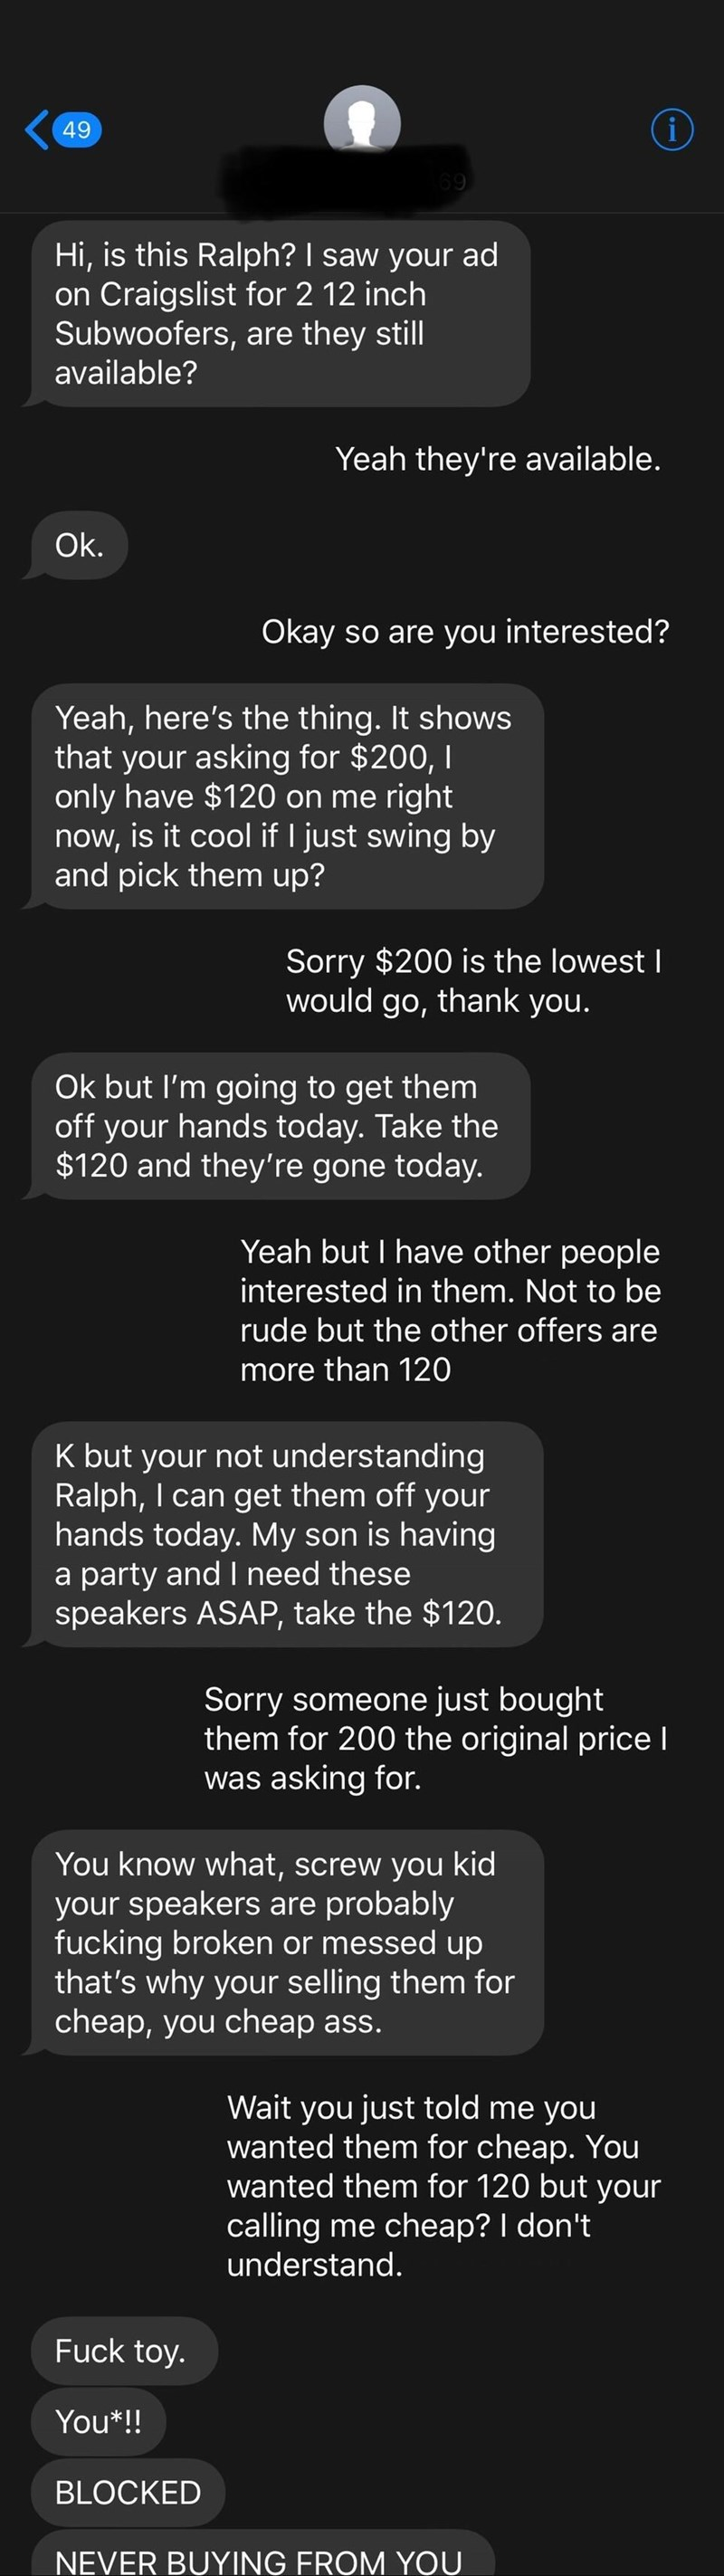 Text - i 49 69 Hi, is this Ralph? I saw your ad on Craigslist for 2 12 inch Subwoofers, are they still available? Yeah they're available. Ok. Okay so are you interested? Yeah, here's the thing. It shows that your asking for $200, I only have $120 on me right now, is it cool if I just swing by and pick them up? Sorry $200 is the lowest I would go, thank you. Ok but I'm going to get them off your hands today. Take the $120 and they're gone today. Yeah but I have other people interested in them. No